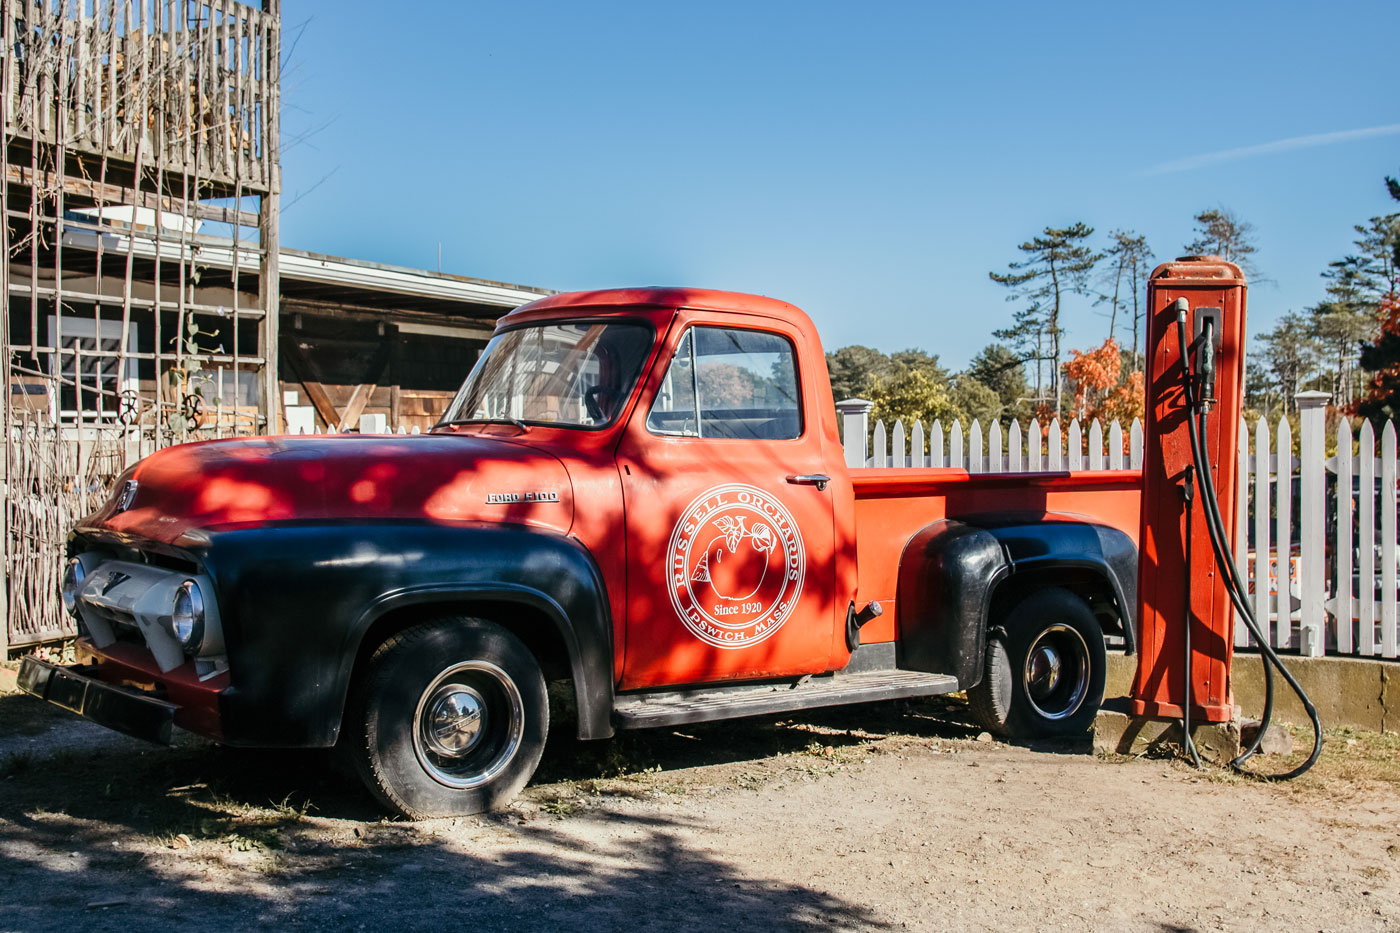 A red Russell Orchard pickup truck.